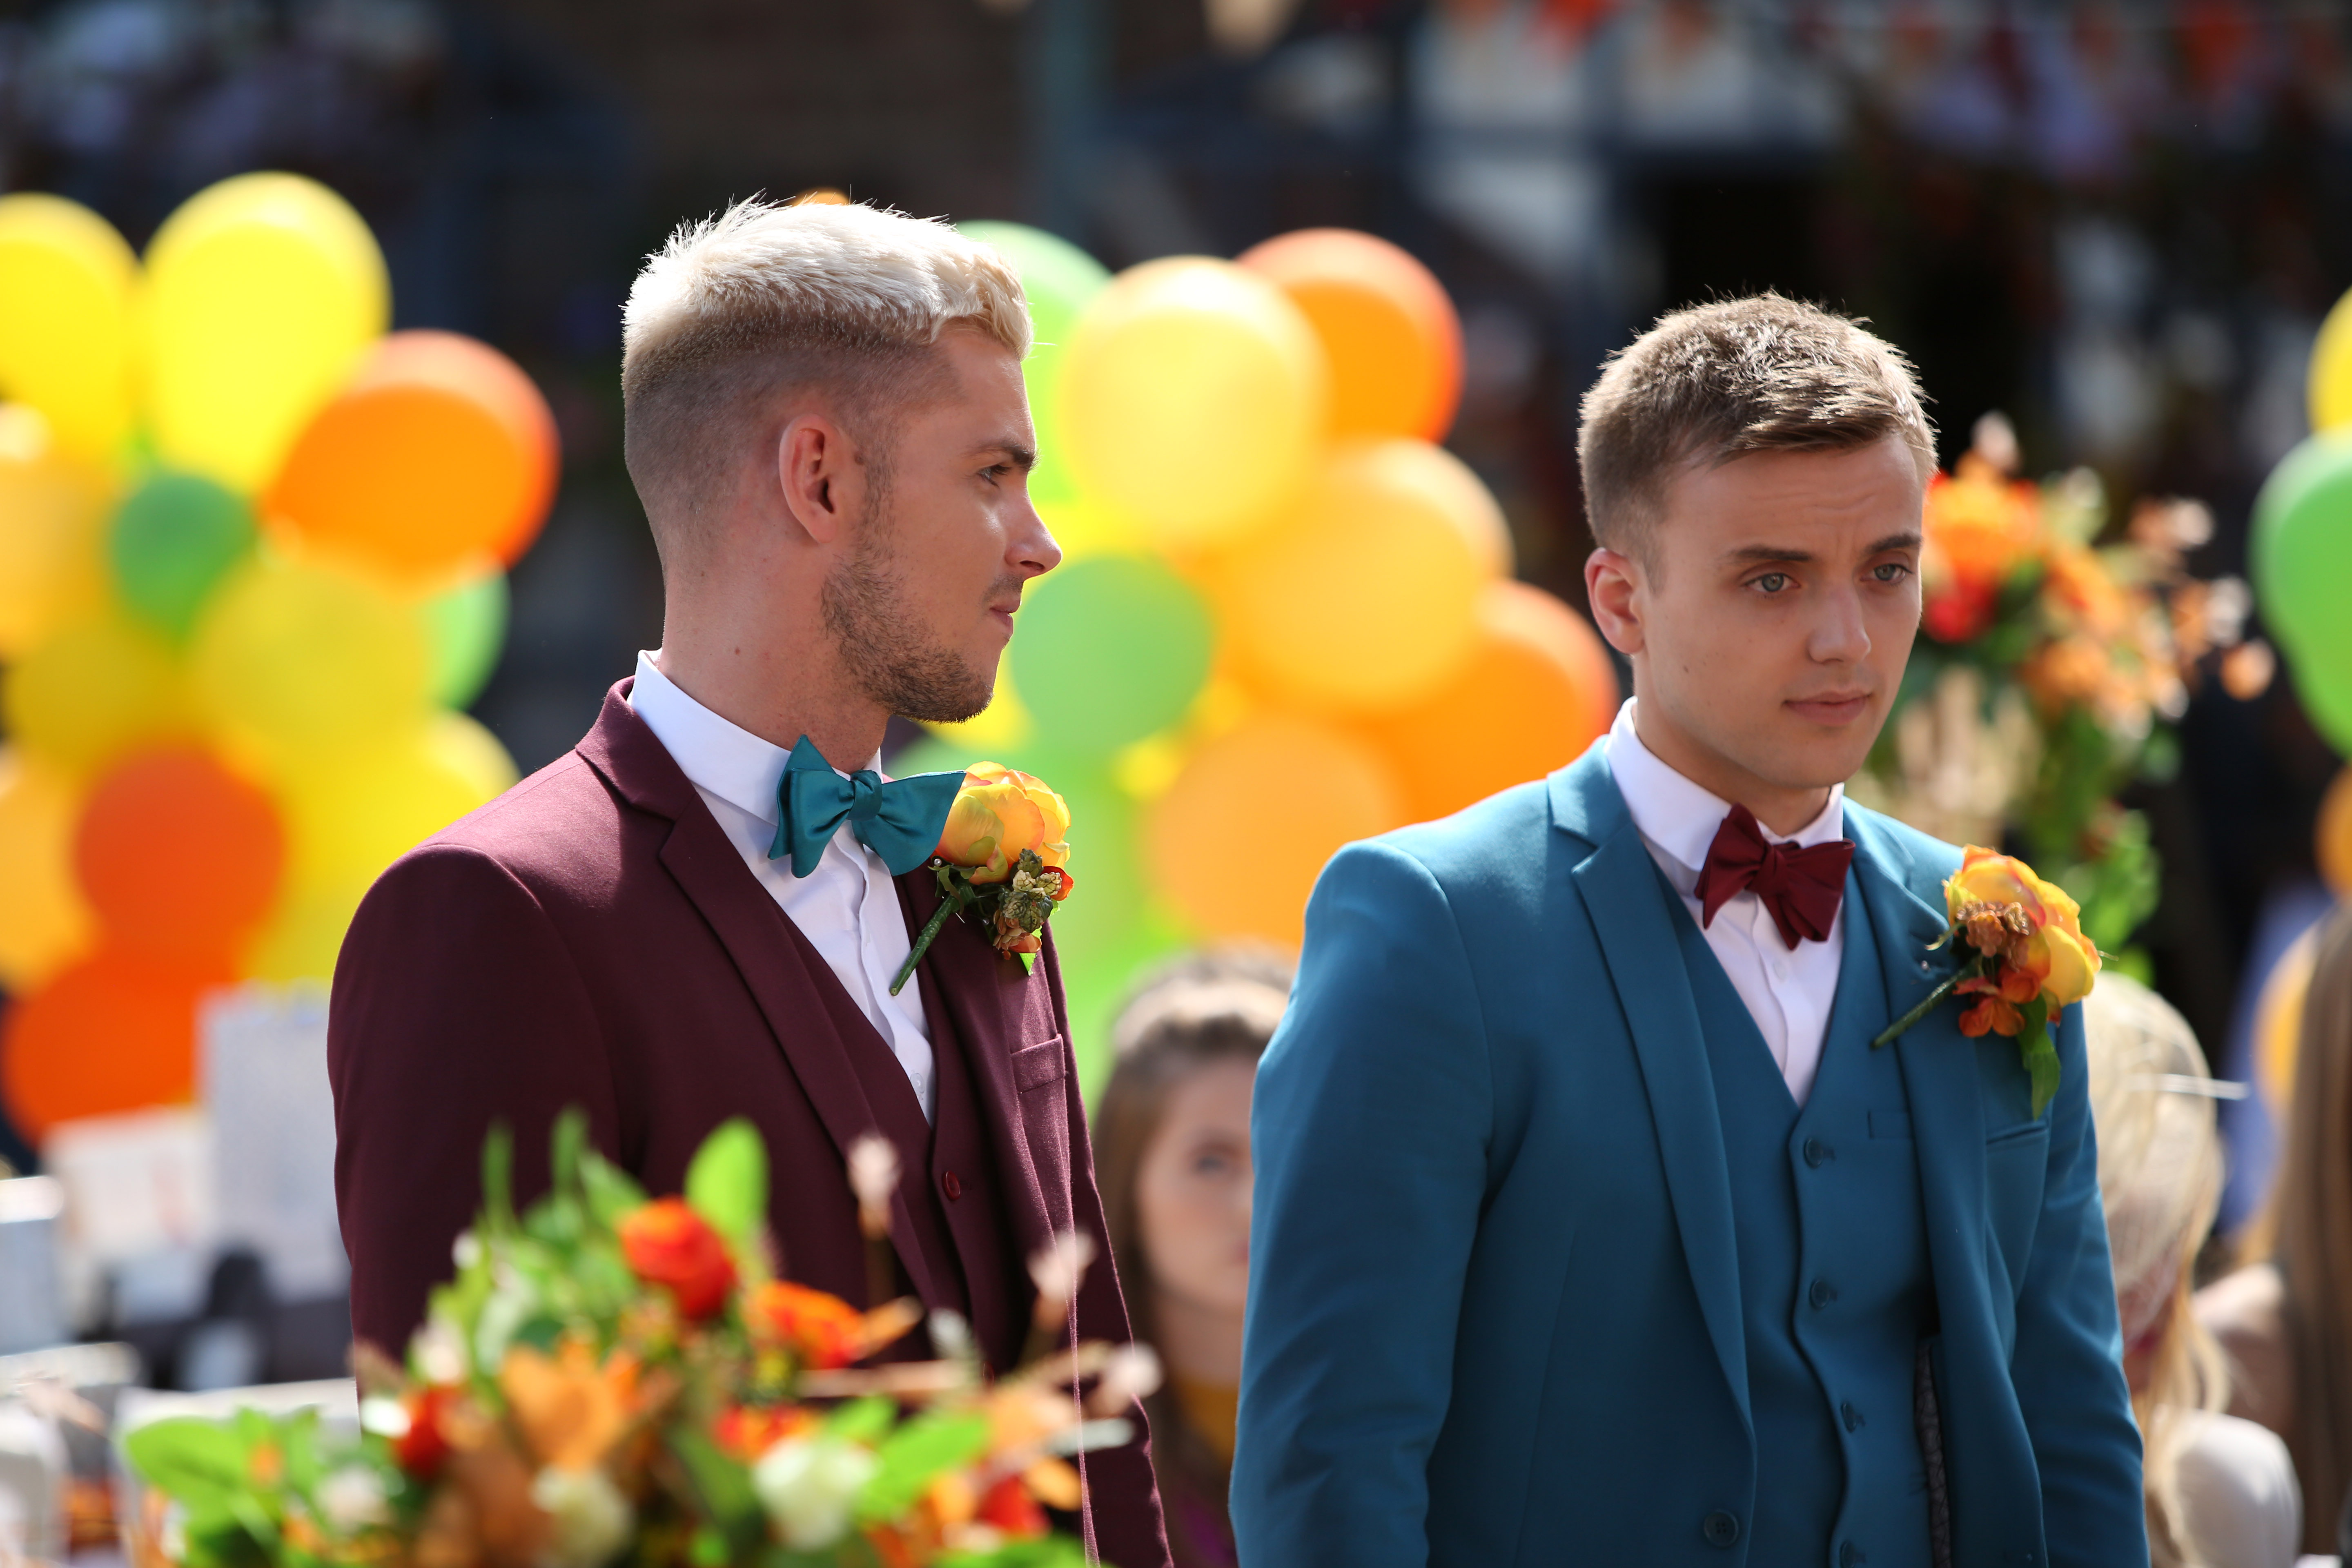 Hollyoaks spoilers: All over for Ste Hay and Harry Thompson? Kieron Richardson and Parry Glasspool reveal all